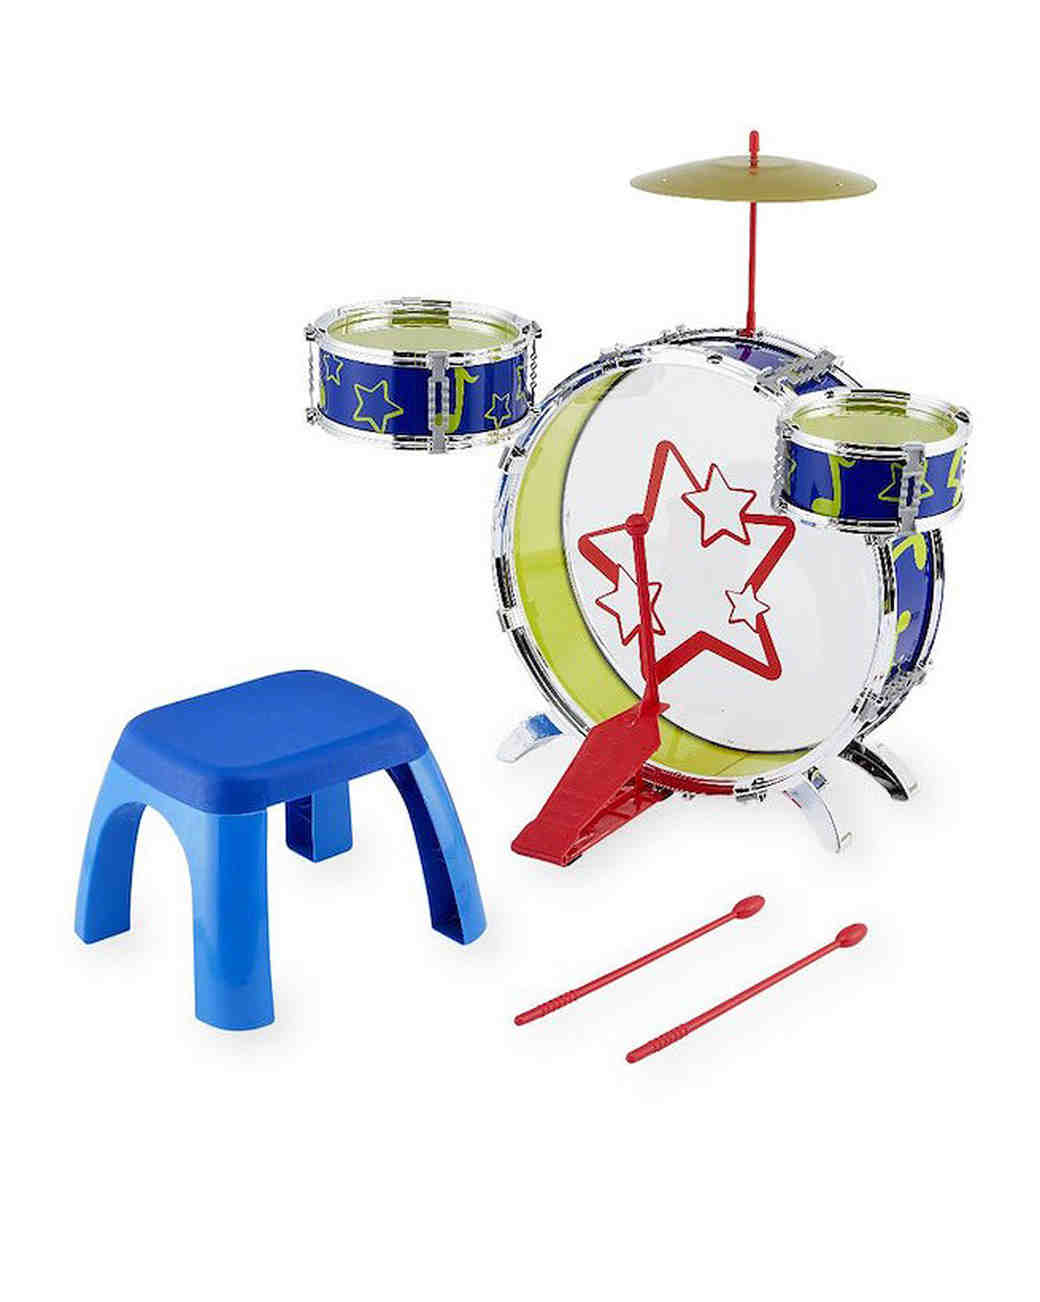 ring bearer gift guide toys-r-us drum set